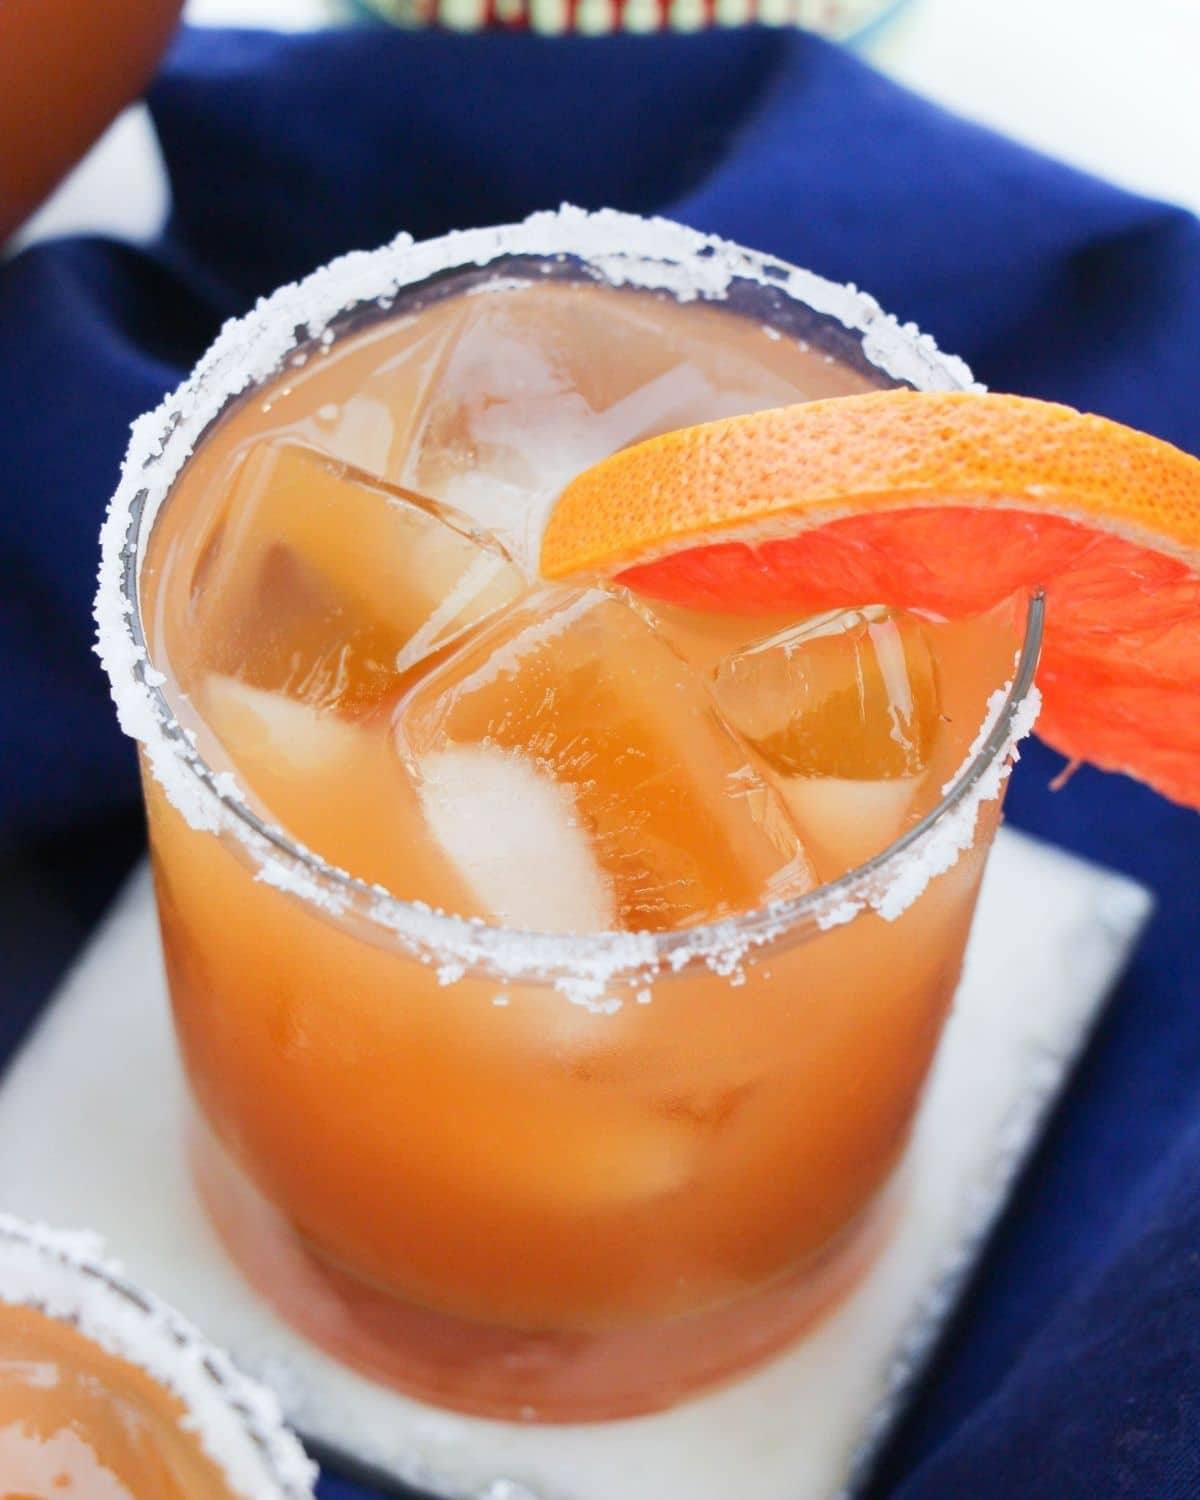 An overhead view of a grapefruit margarita in a glass